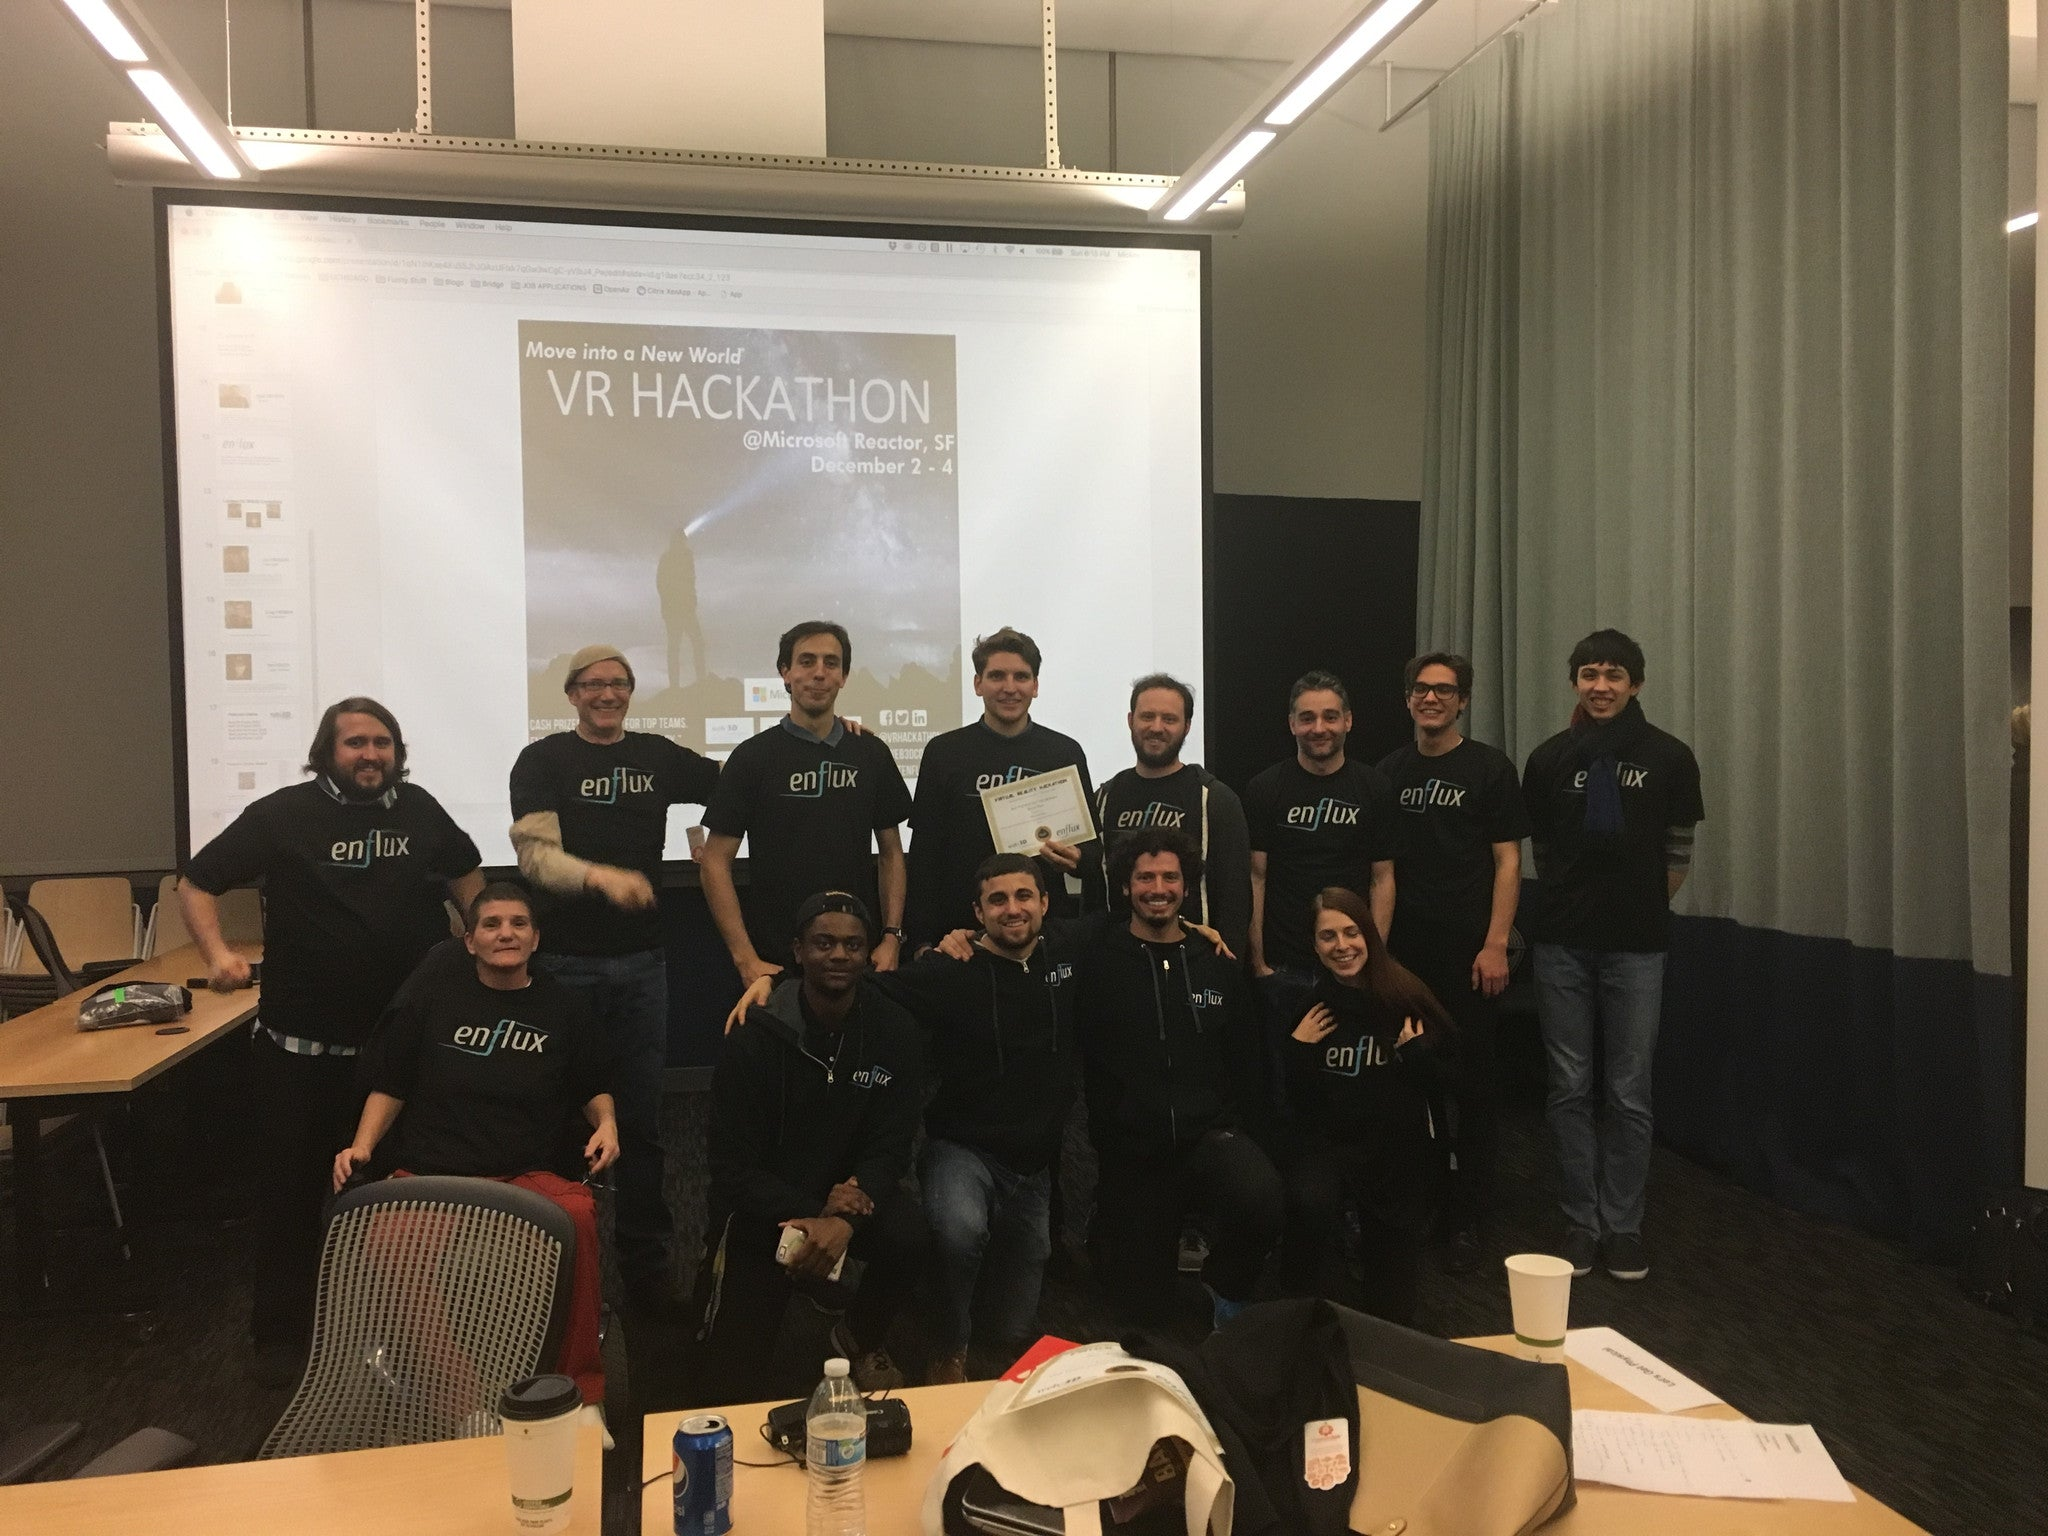 Event Recap: VR Hackathon @ The Microsoft Reactor Dec 2-4